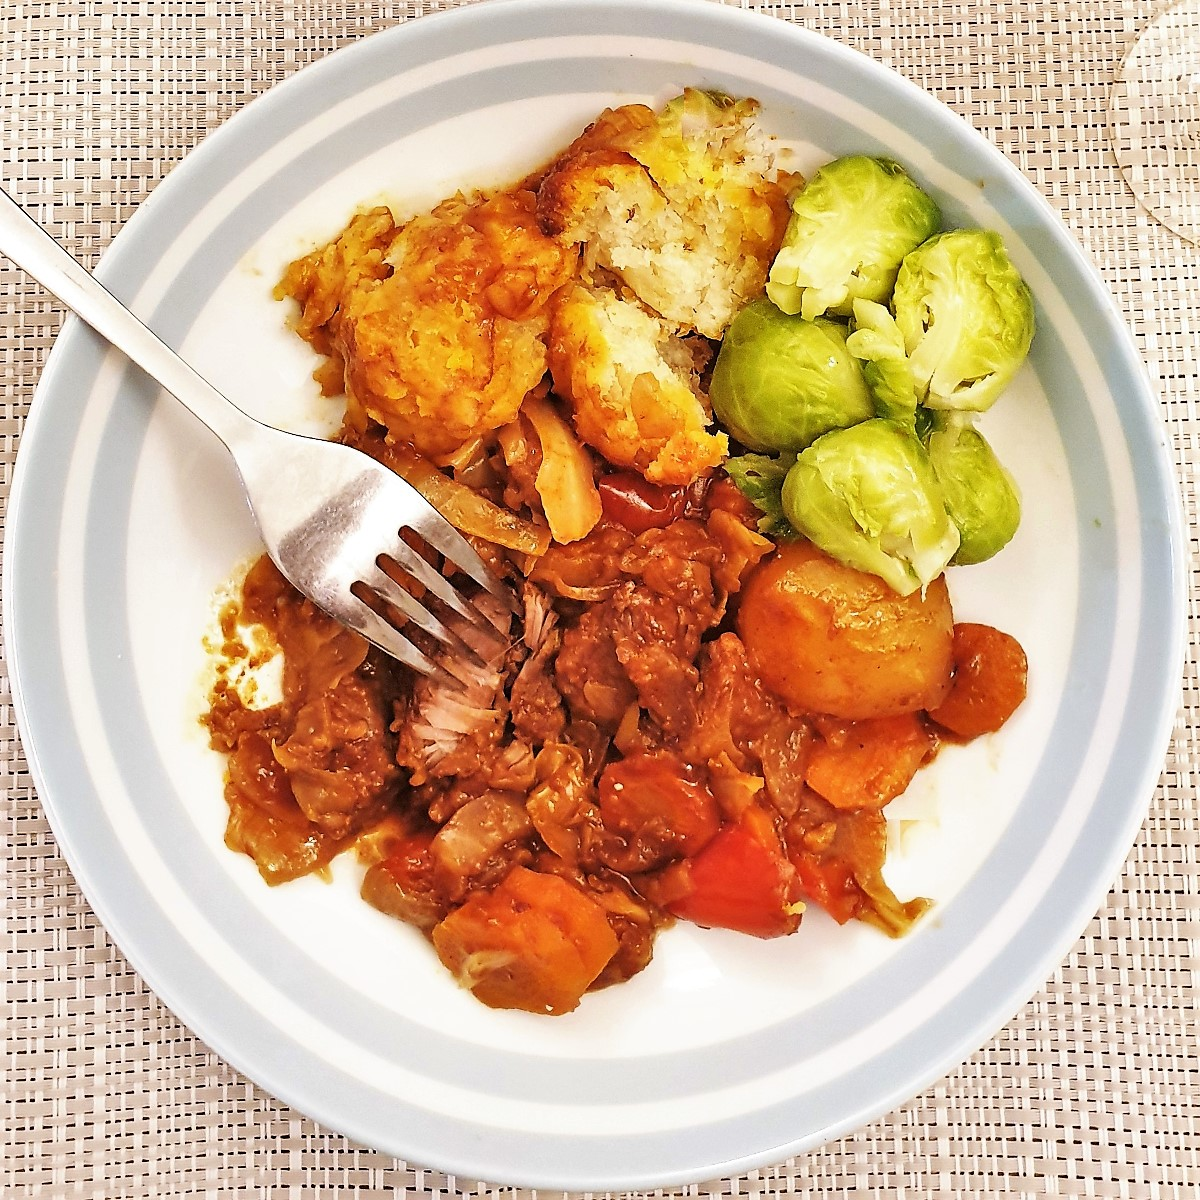 A dish of beef casserole with suet dumplings, showing a fork cutting into the beef, with fluffy suet dumplings and the first brussels sprouts of the season.